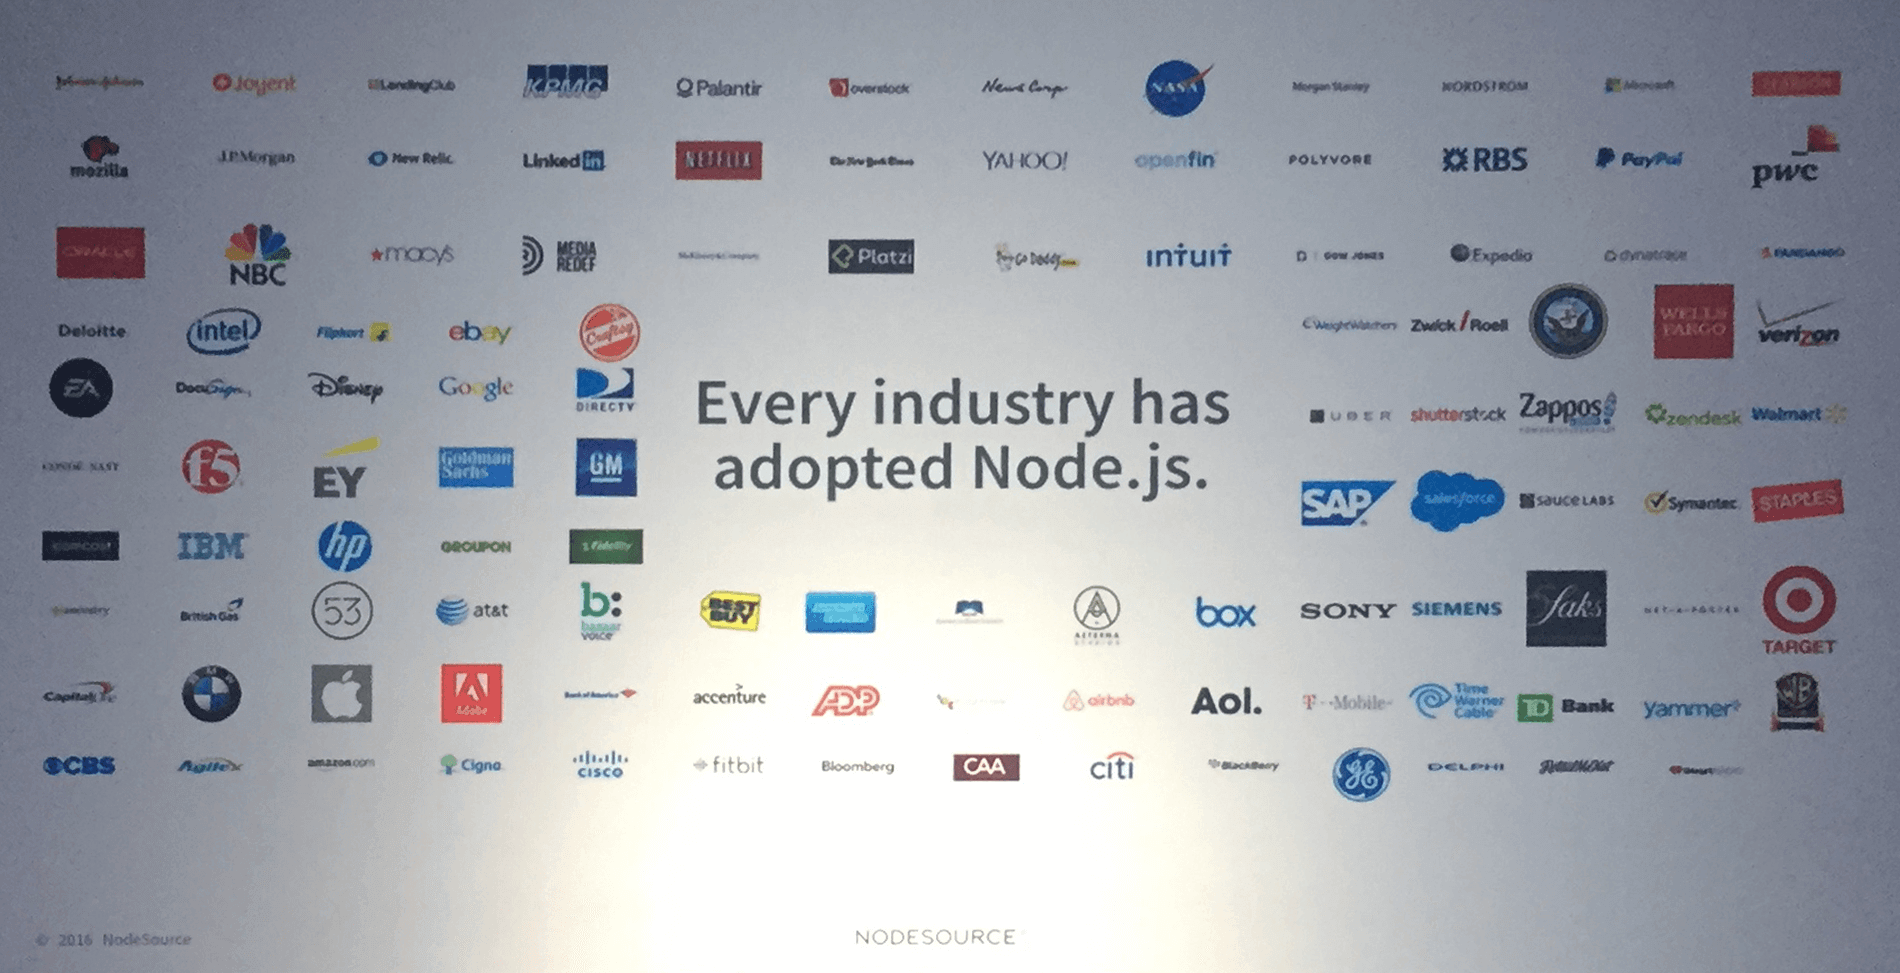 Every Industry has adopted Node.js